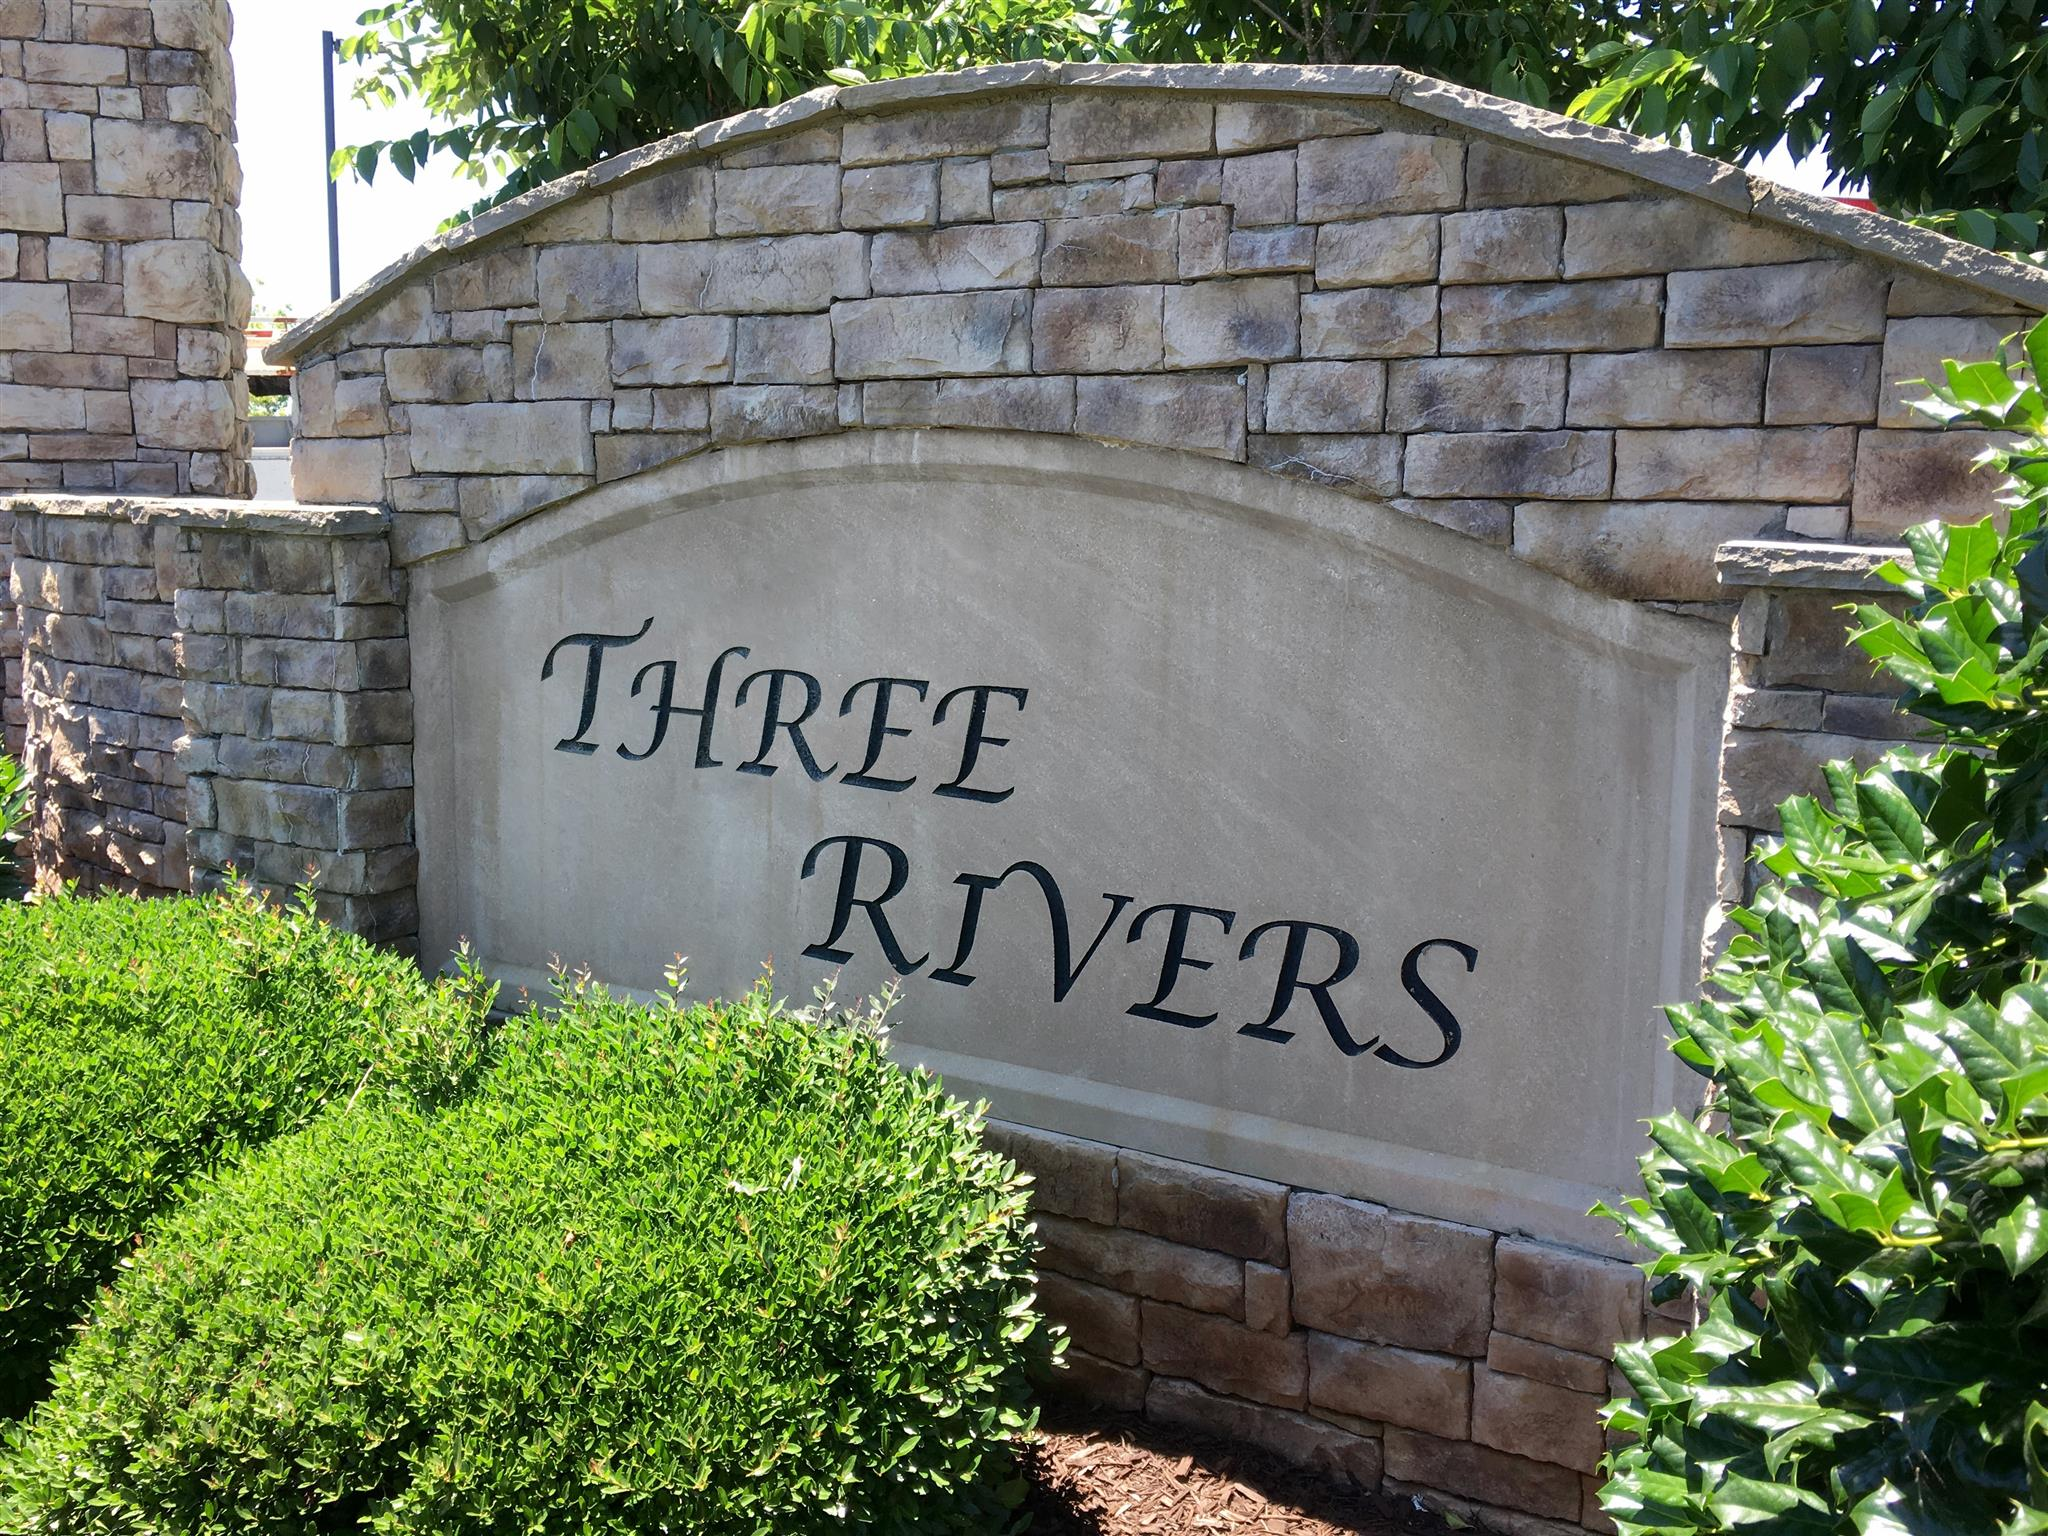 152 Three Rivers, Murfreesboro, TN 37128